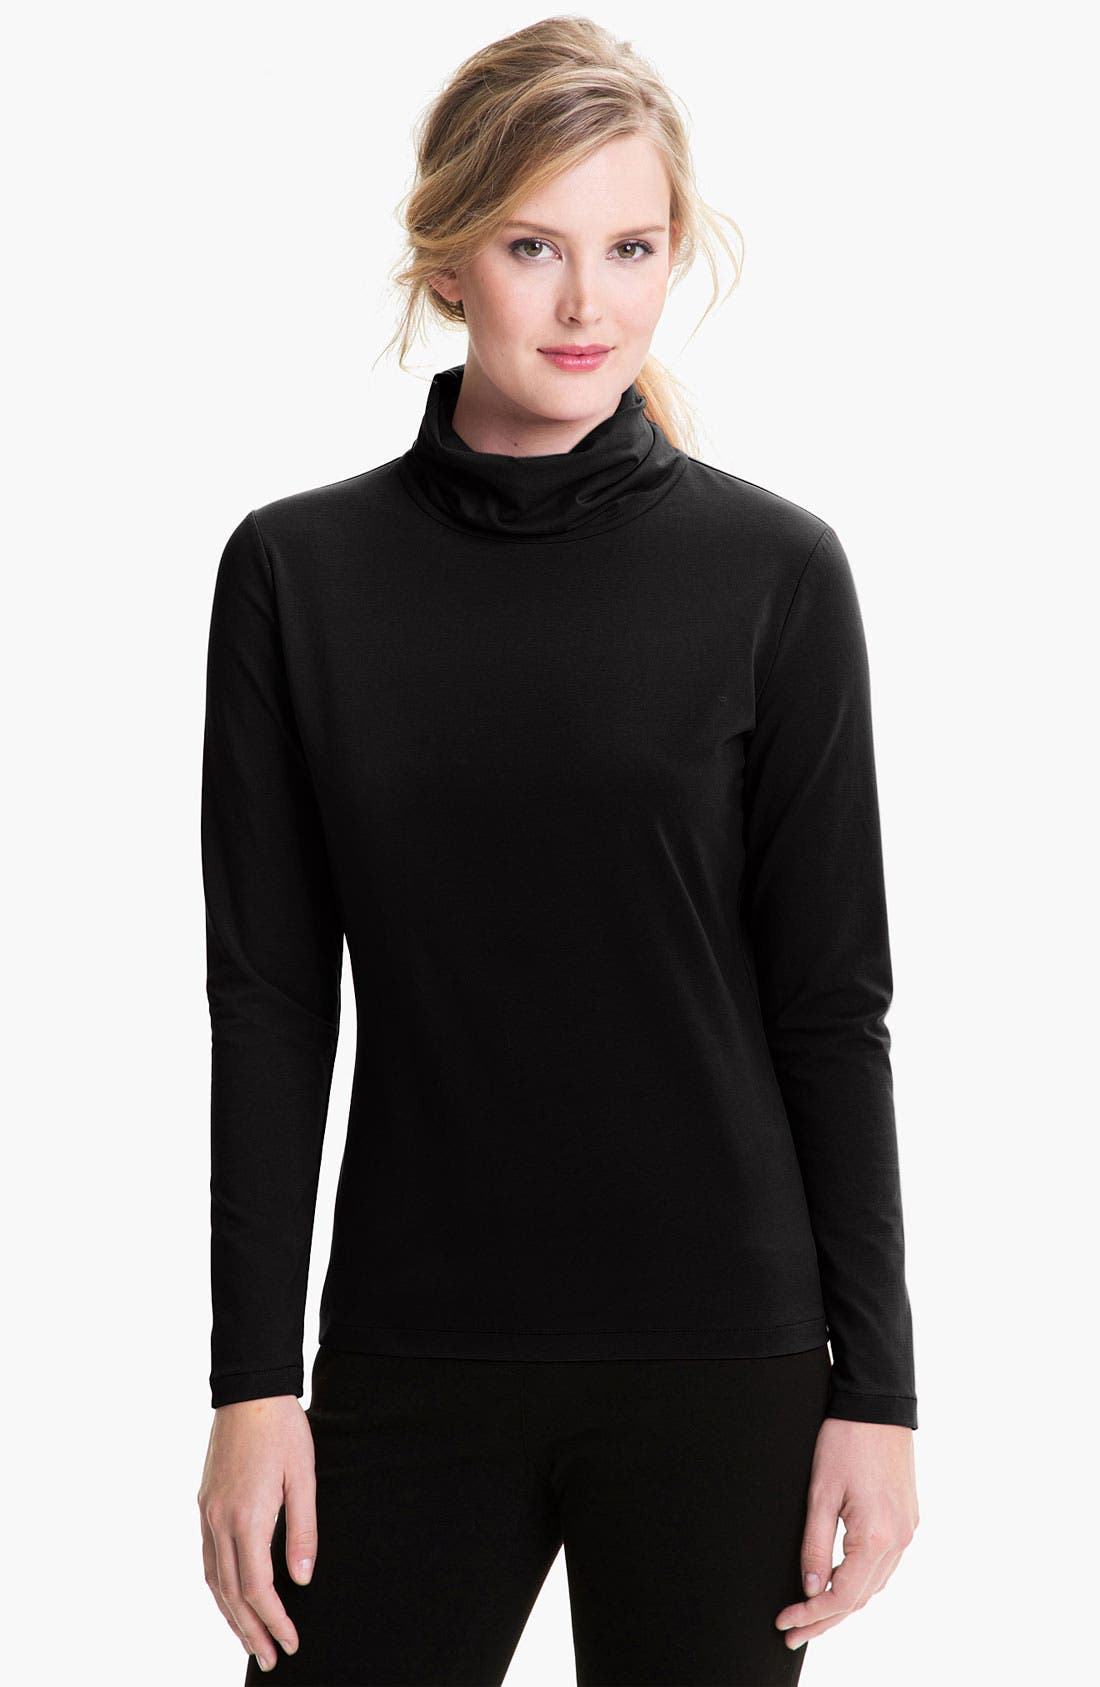 Alternate Image 1 Selected - Lafayette 148 New York 'City Stretch' Turtleneck